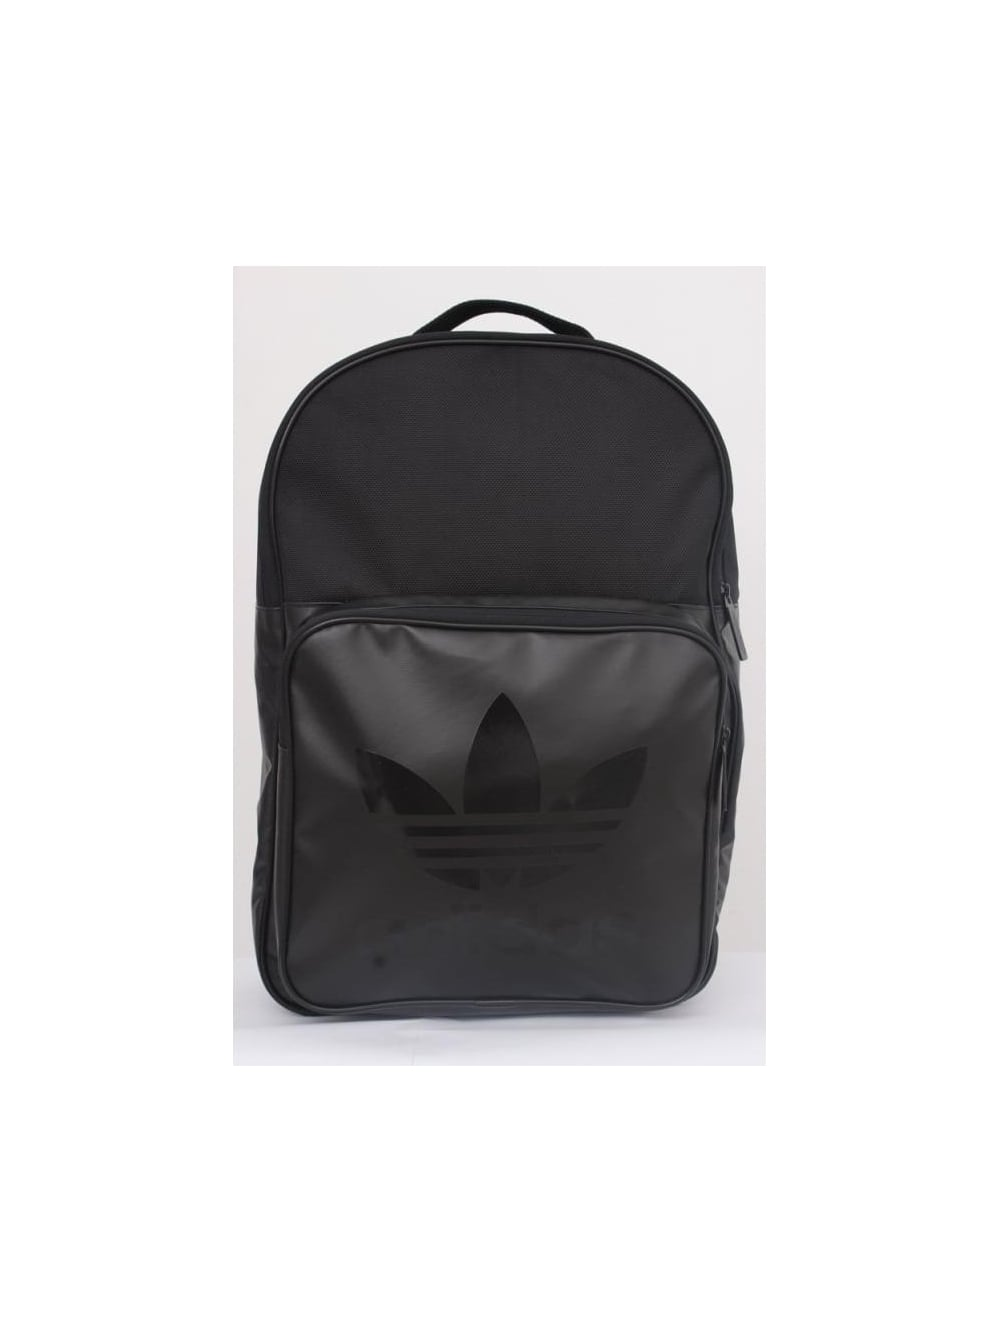 531556ec34e2 adidas Originals Classic Backpack in Black - Northern Threads